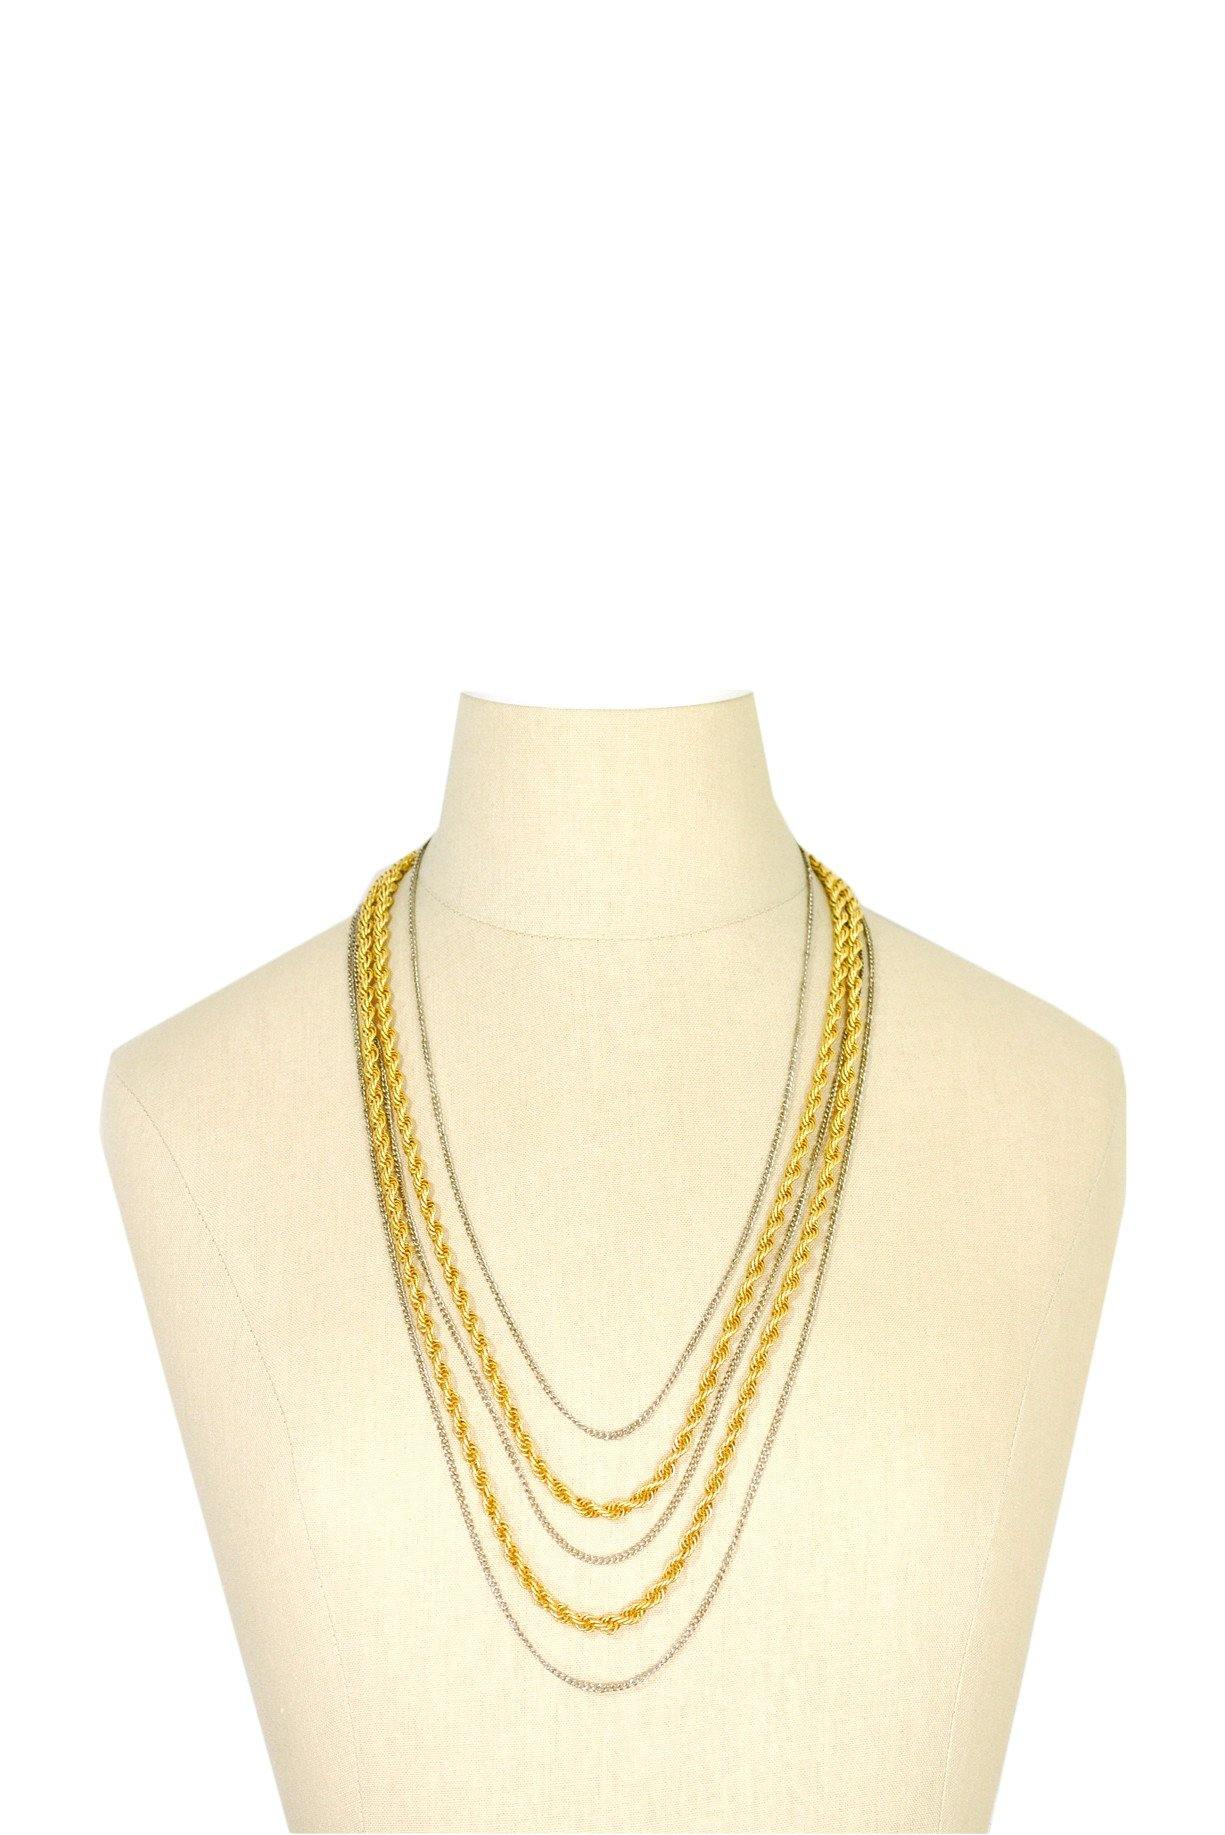 50's__Goldette__Multi-Chain Necklace